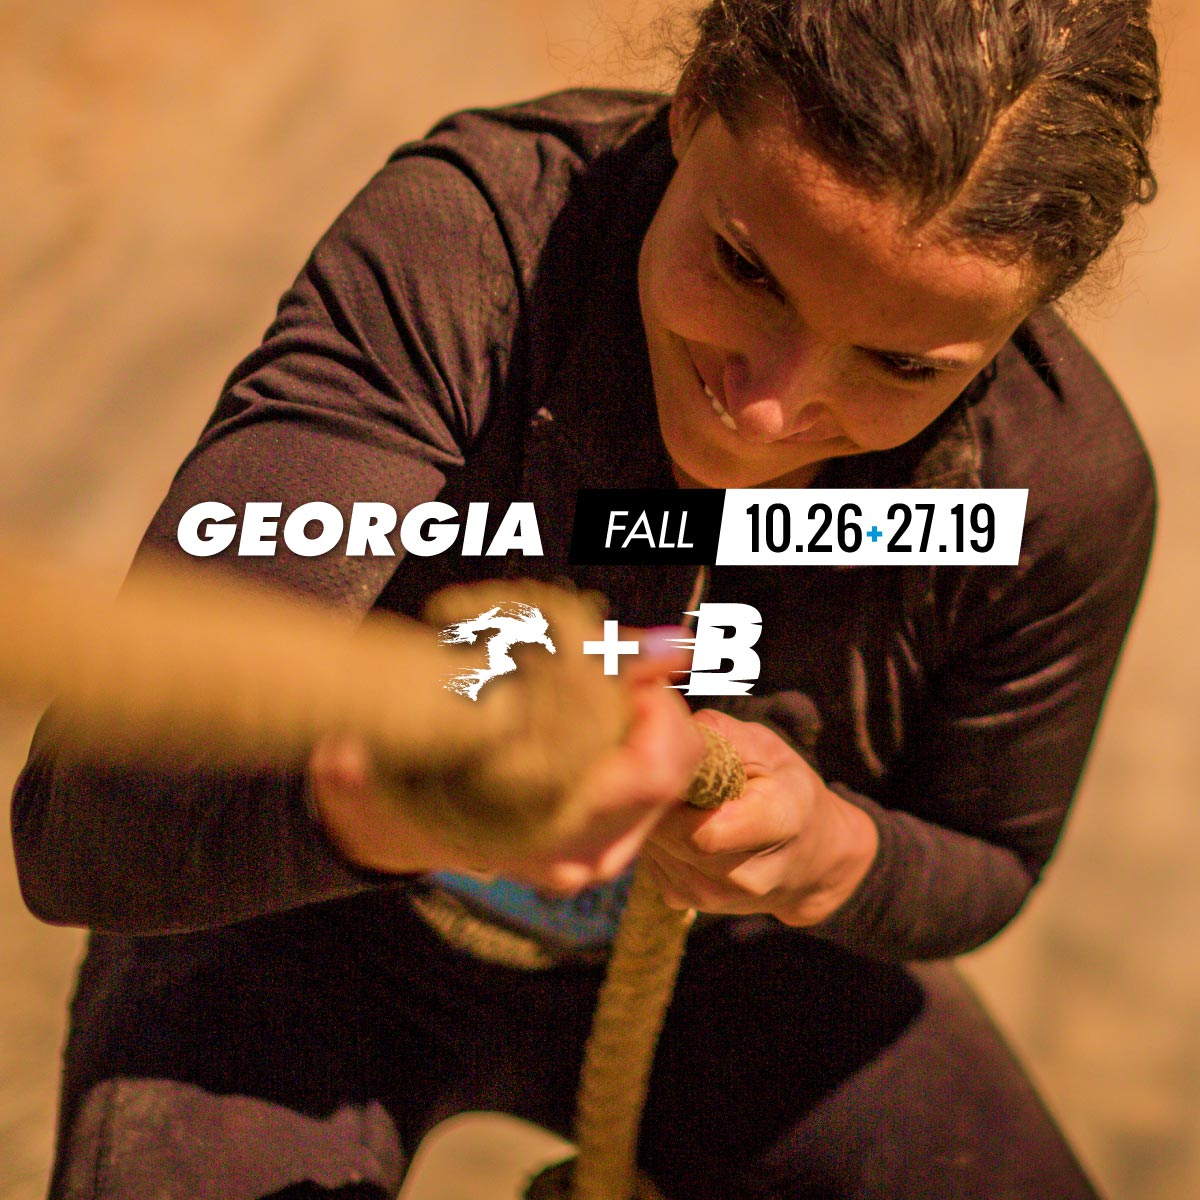 Savage Race Georgia Fall 2019